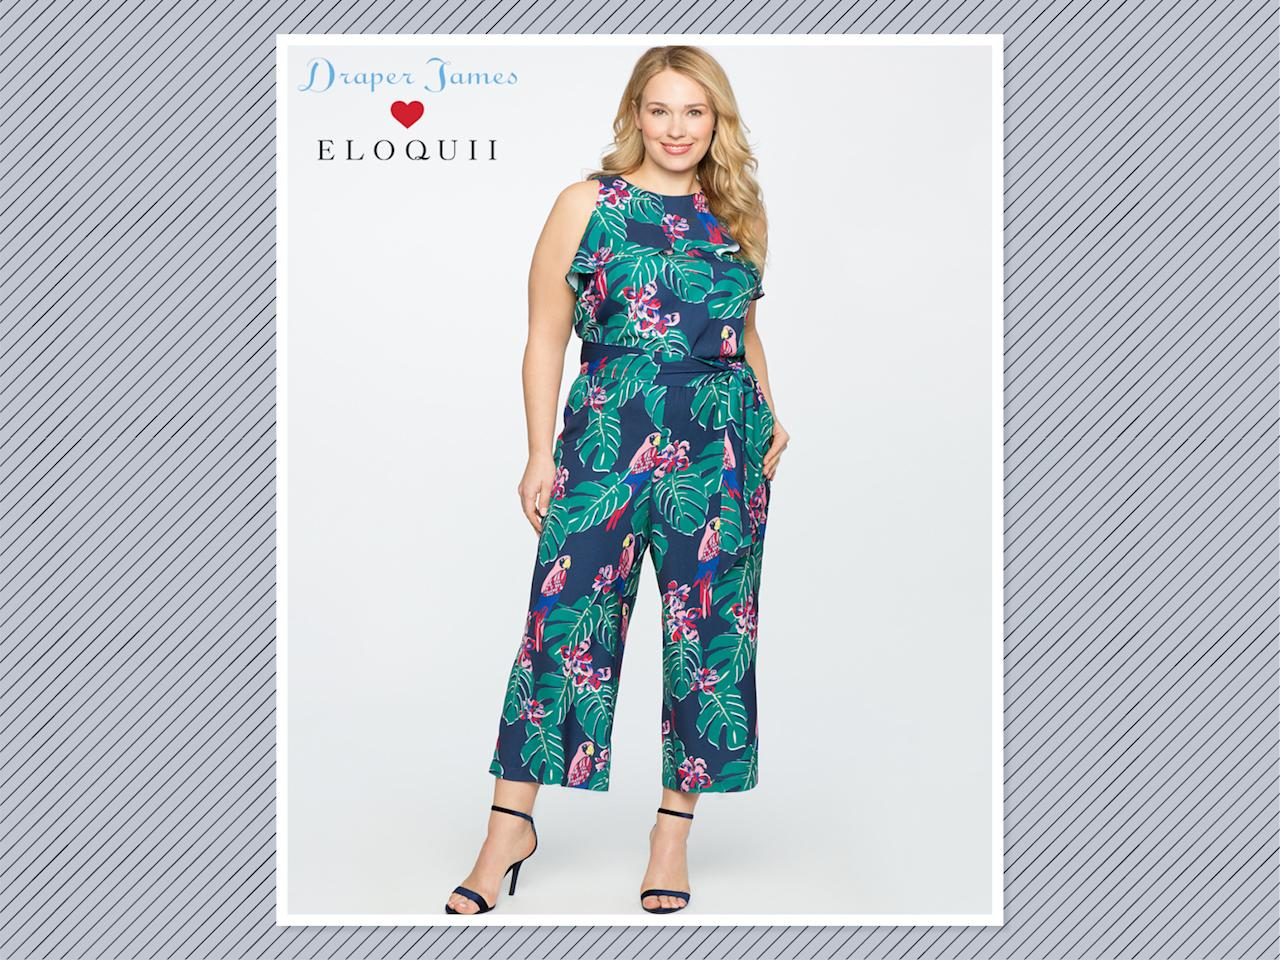 6fad817008b05 Reese Witherspoon launches plus-size clothing with Eloquii